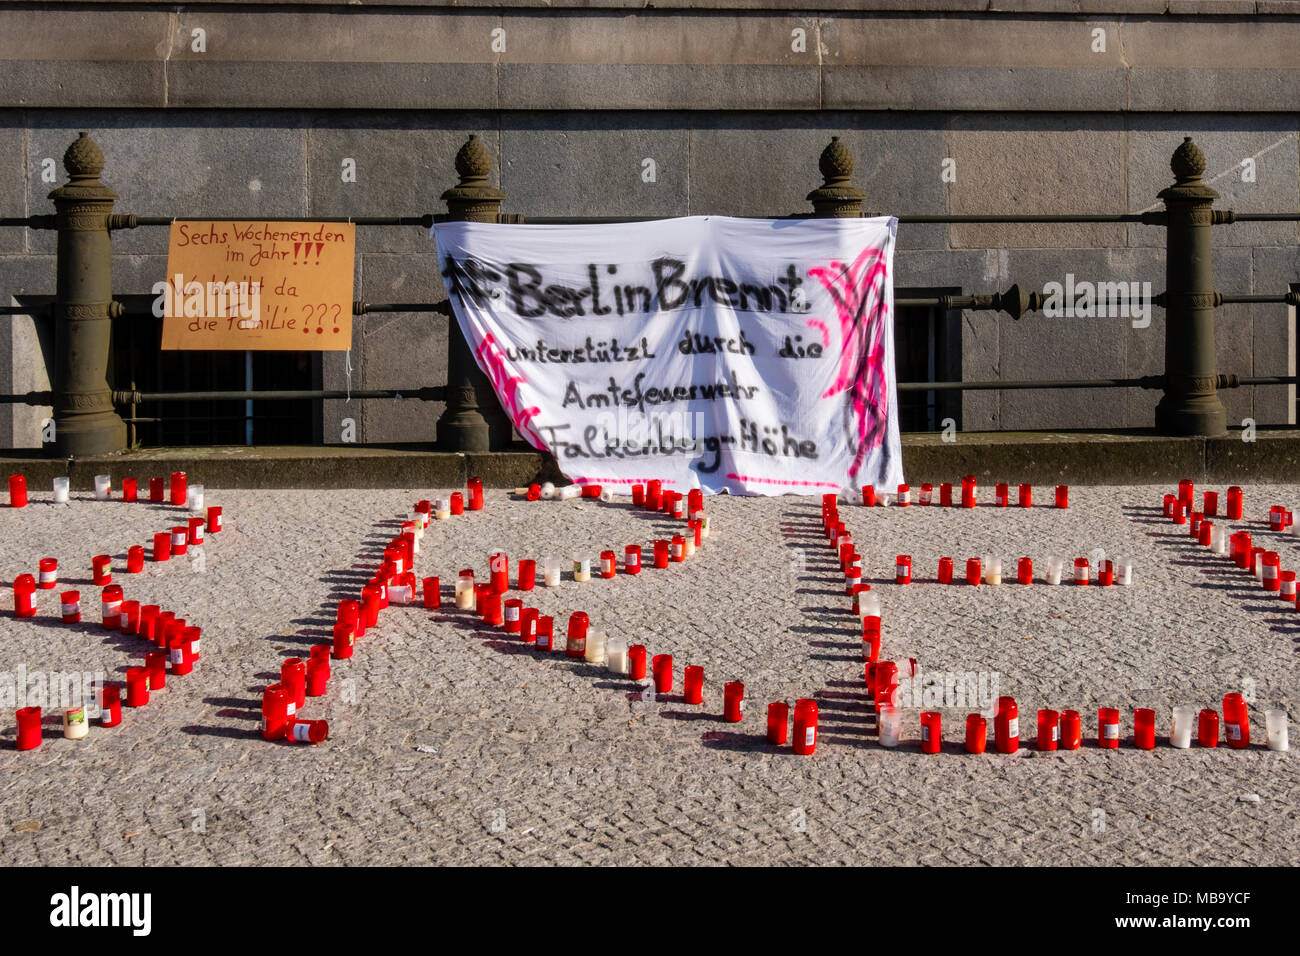 Germany Berlin, Mitte, 8th April 2018. Berlin Firefighters oppose austerity policies of state government in 'Berlin Burns' demonstration in Front of the Red Town Hall Firefighters are protesting about poor working conditions, lack of staff, old equipment and a recently introduced 12-hour shift system. A brazier carries their motto 'Berlin burns' in a symbolic attempt to alert the public to the dangerous situation. The firefighters' protest is directed against the Social Democratic-Left Party-Green Party coalition that runs the Berlin state government. credit: Eden Breitz/Alamy Live News - Stock Image